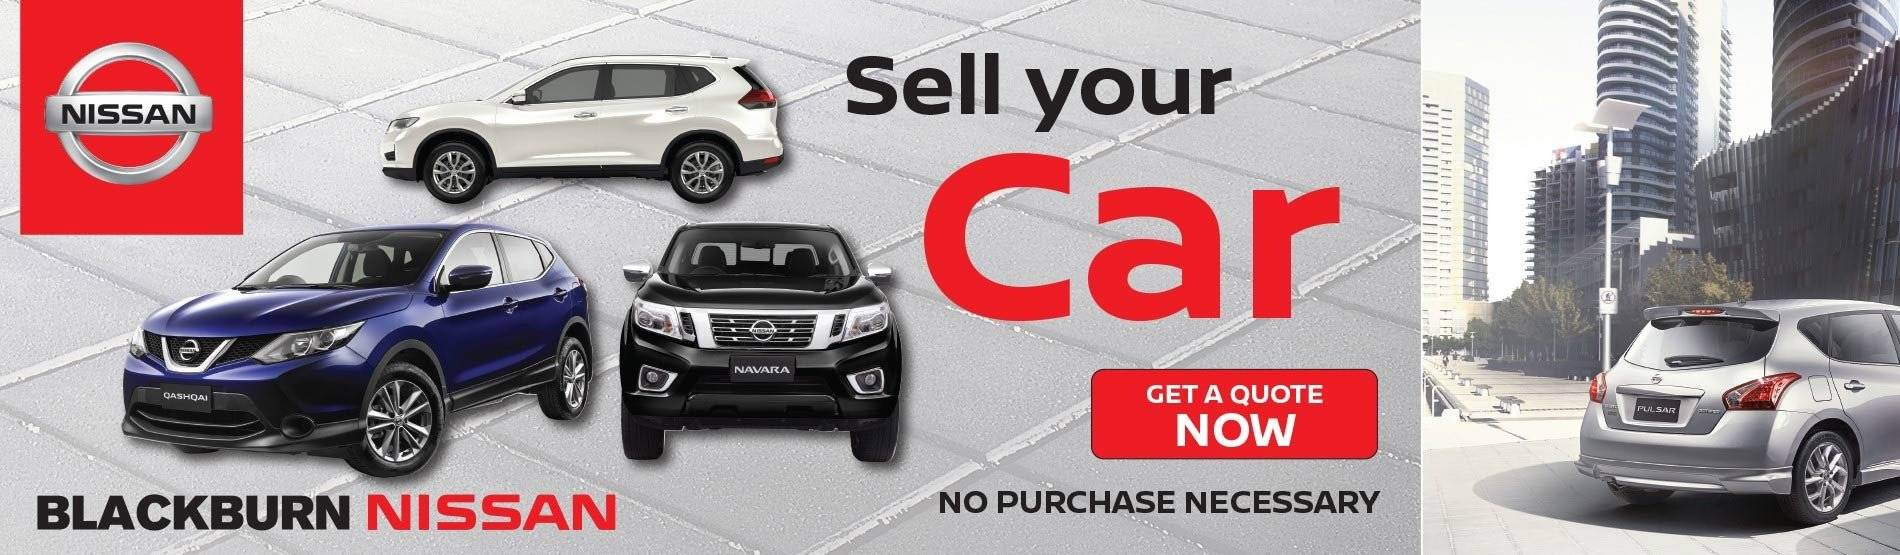 Blackburn Nissan - Sell Your Car